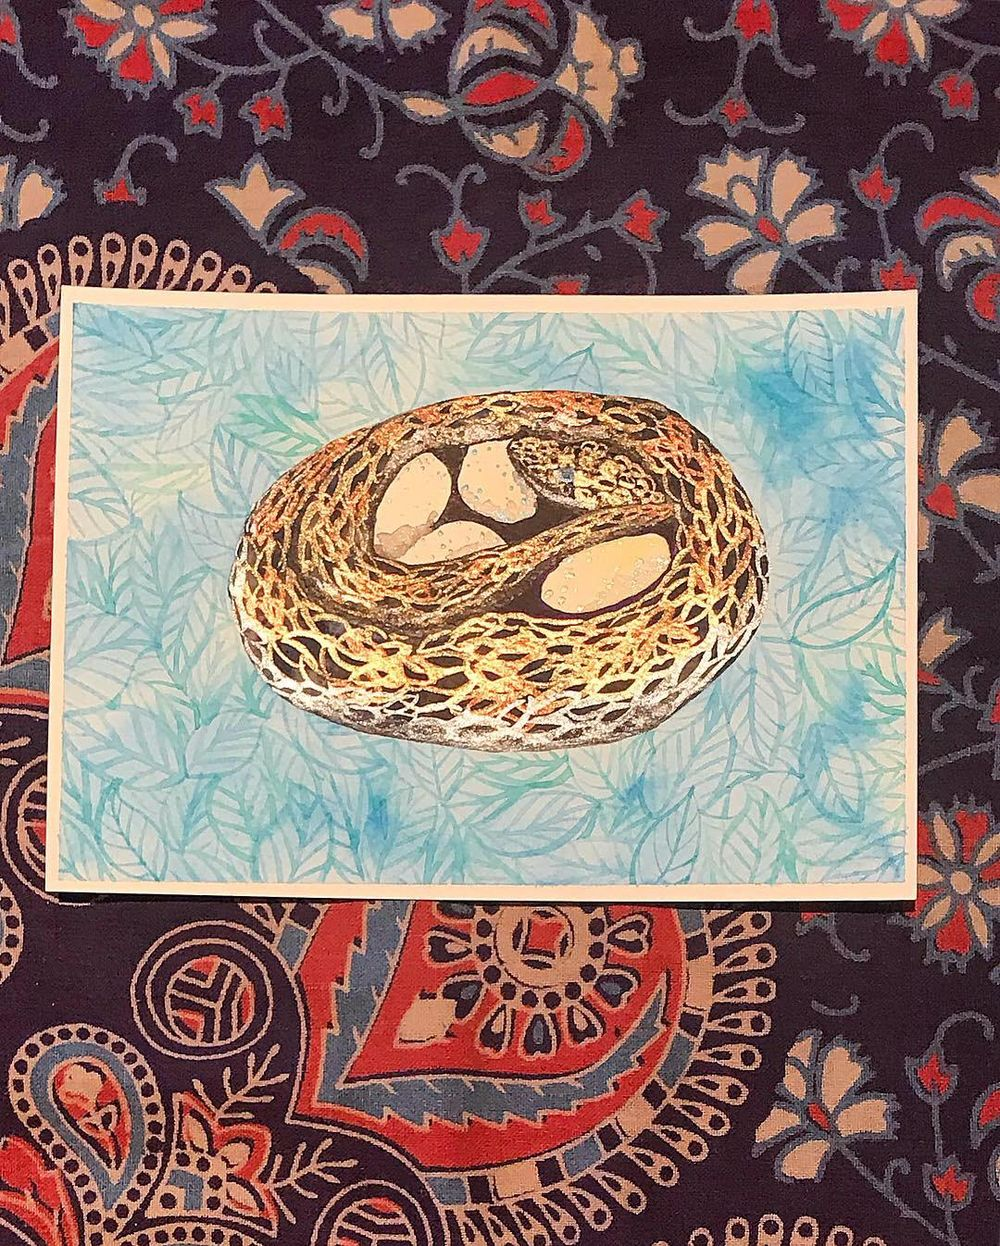 Metallic pythons and eggs - image 6 - student project